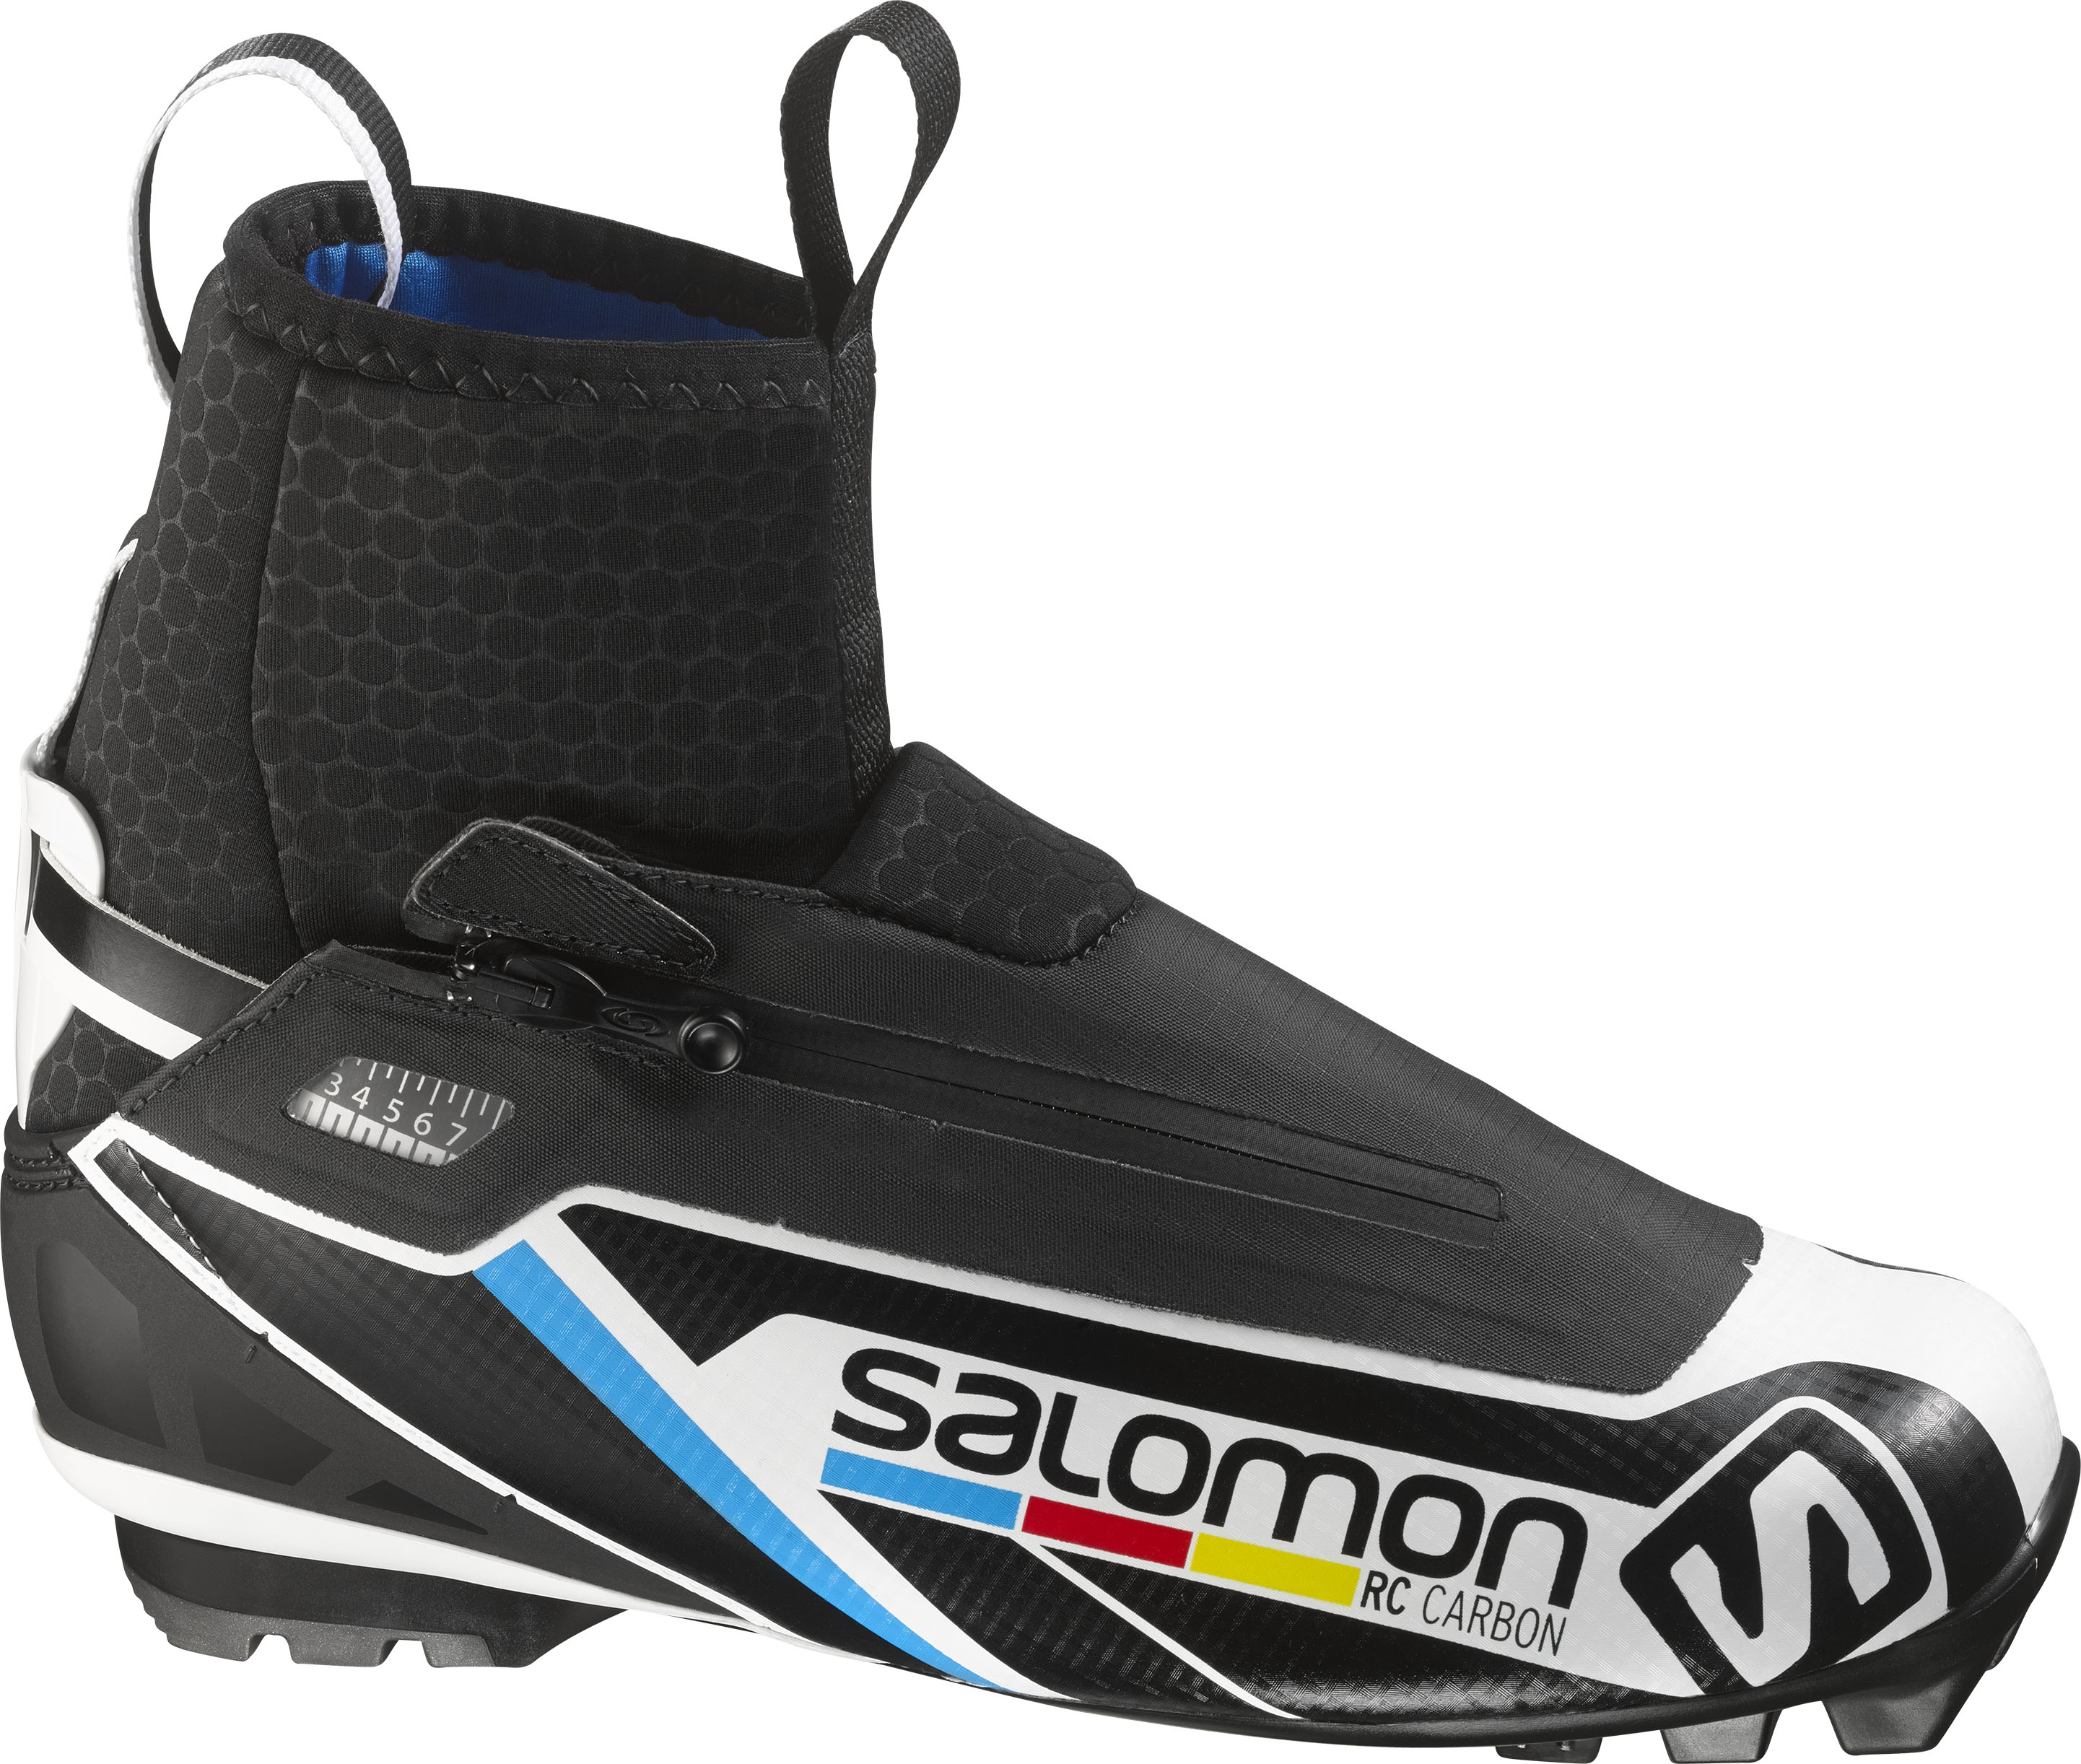 SALOMON RC CARBON PILOT 17/18